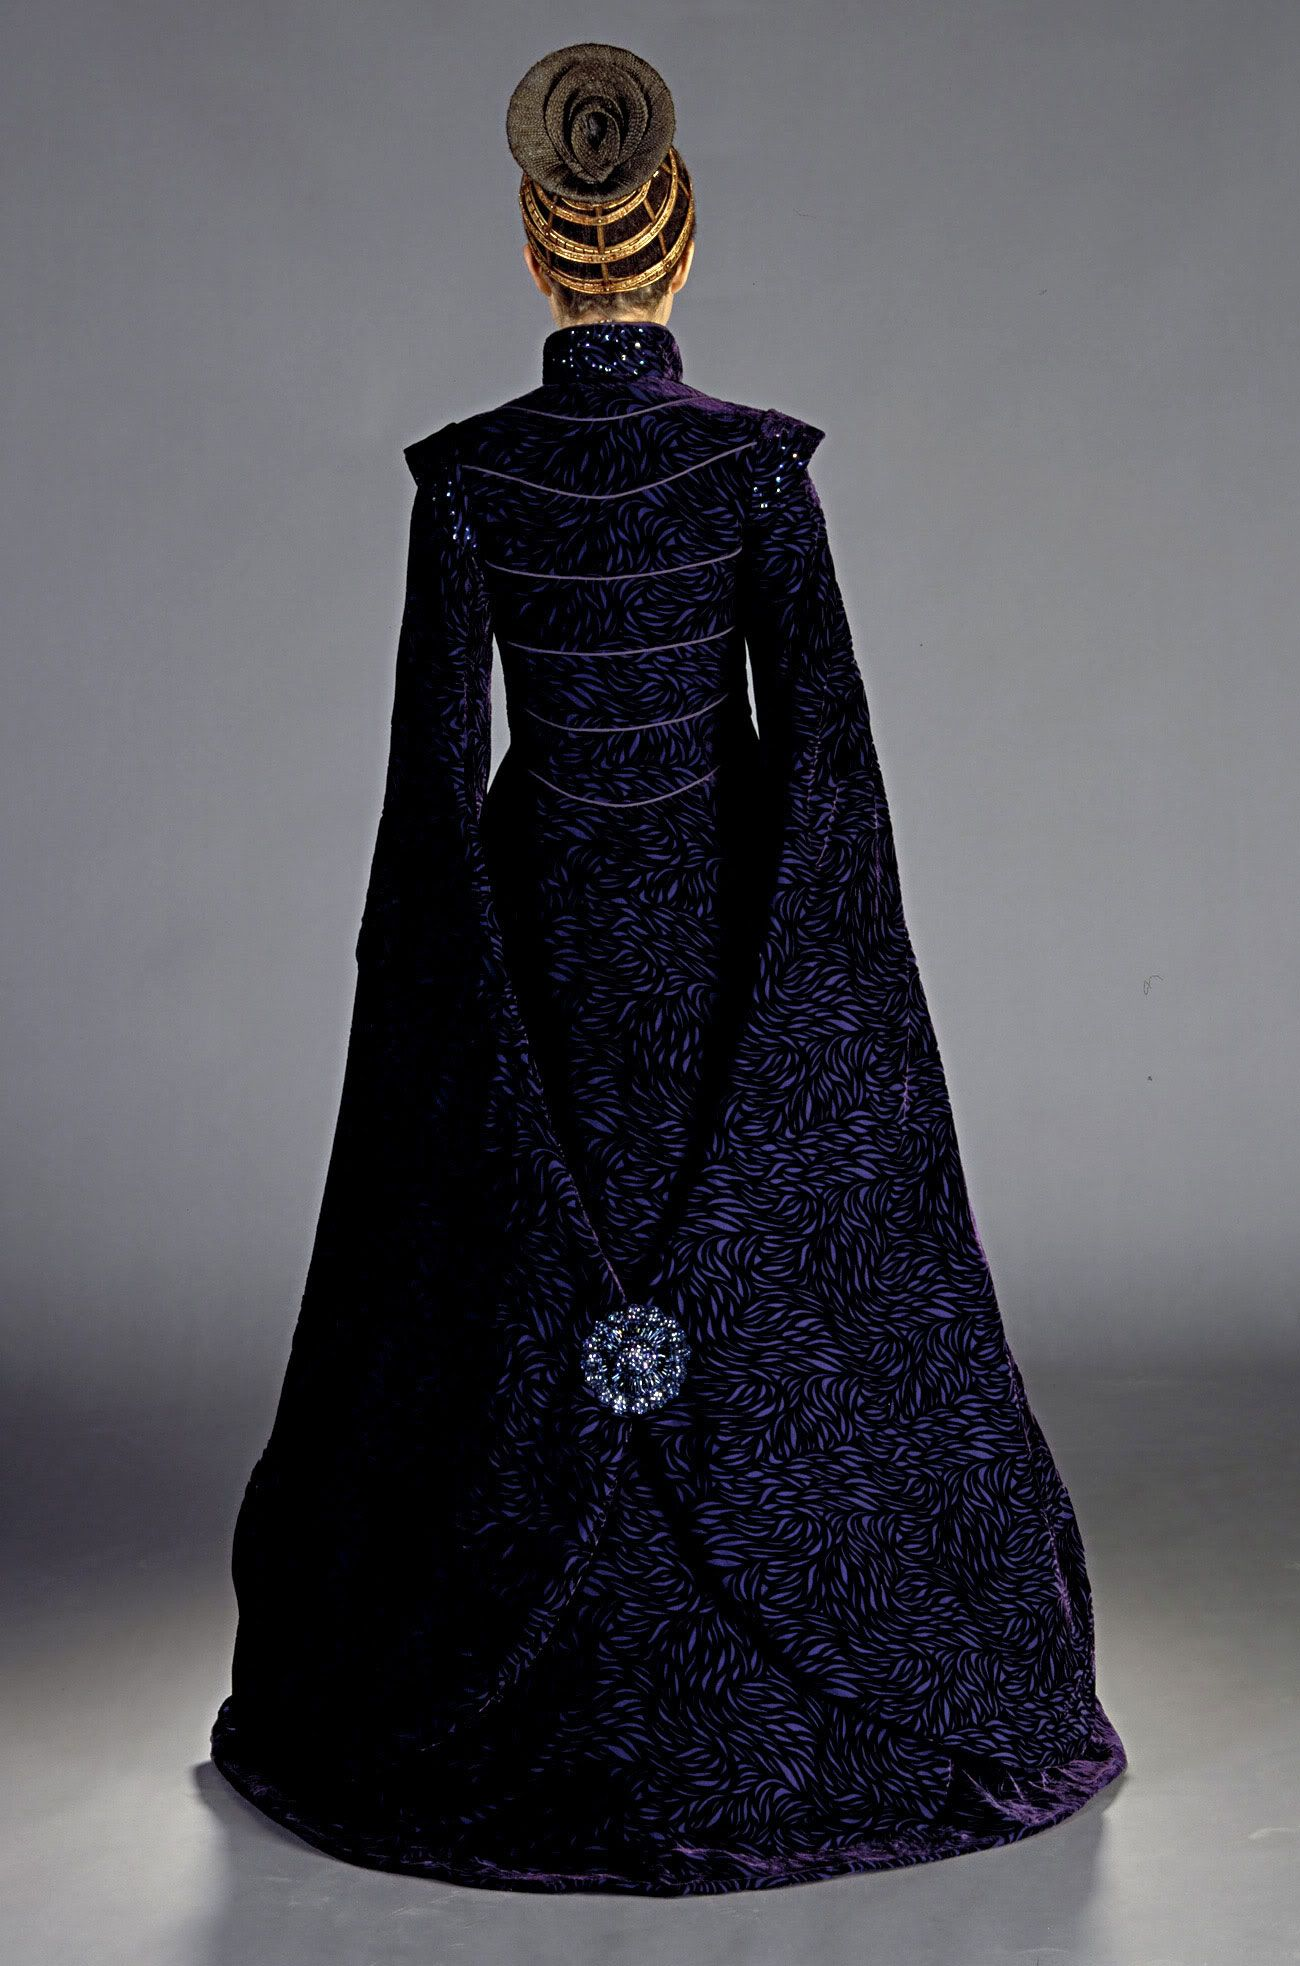 Senator Padme Amidala, 'StarWars Episode II: Attack of the Clones'. 'Loyalist Comittee' costume back view, designed by Trisha Biggar.